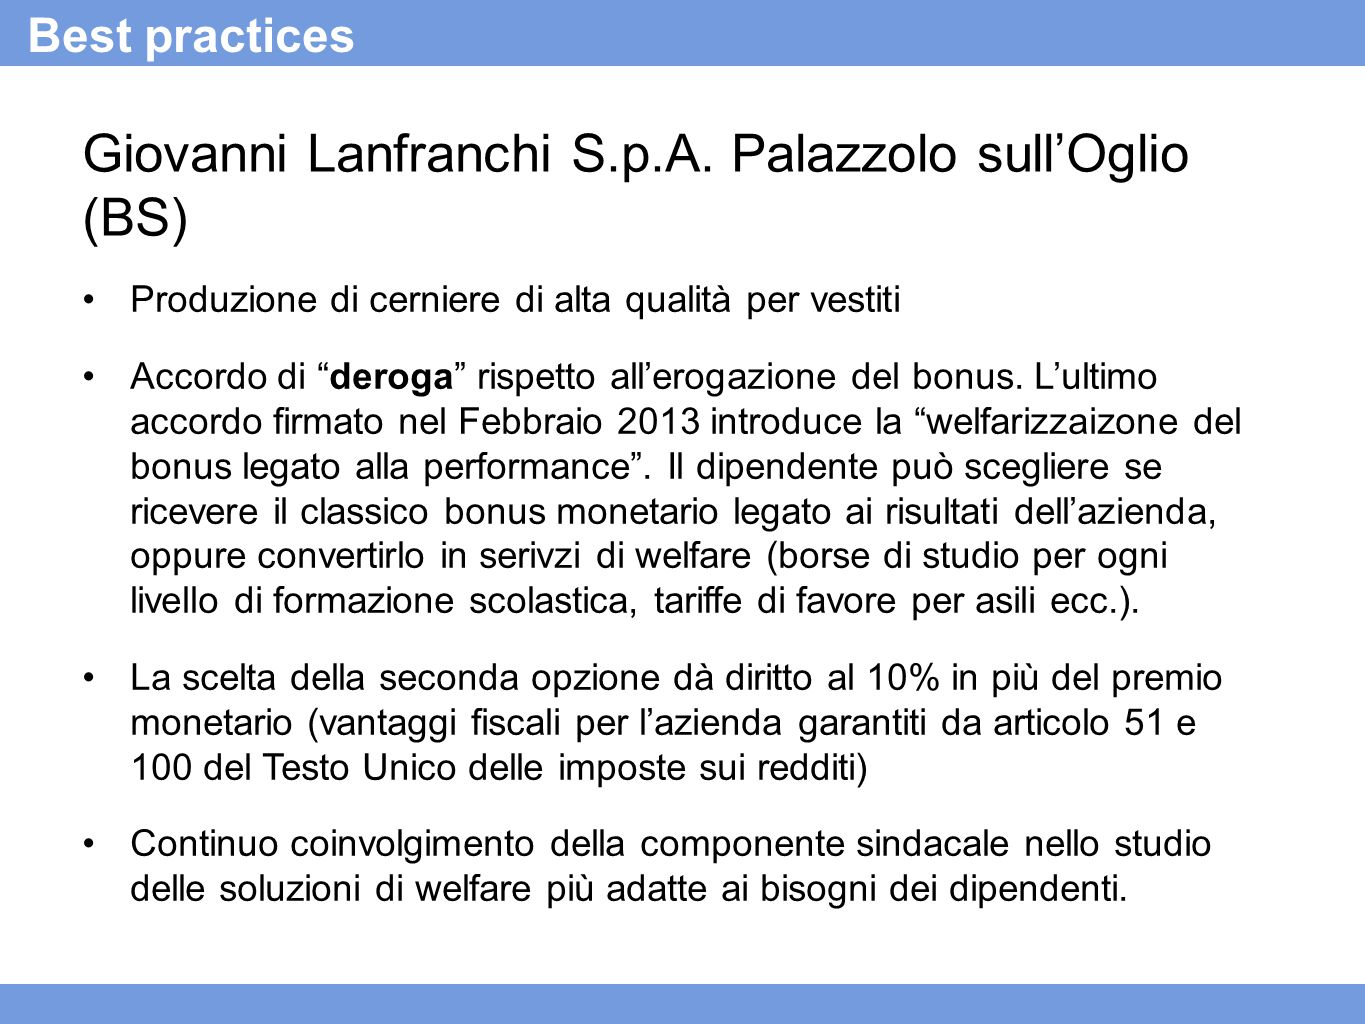 Giovanni Lanfranchi S.p.A.